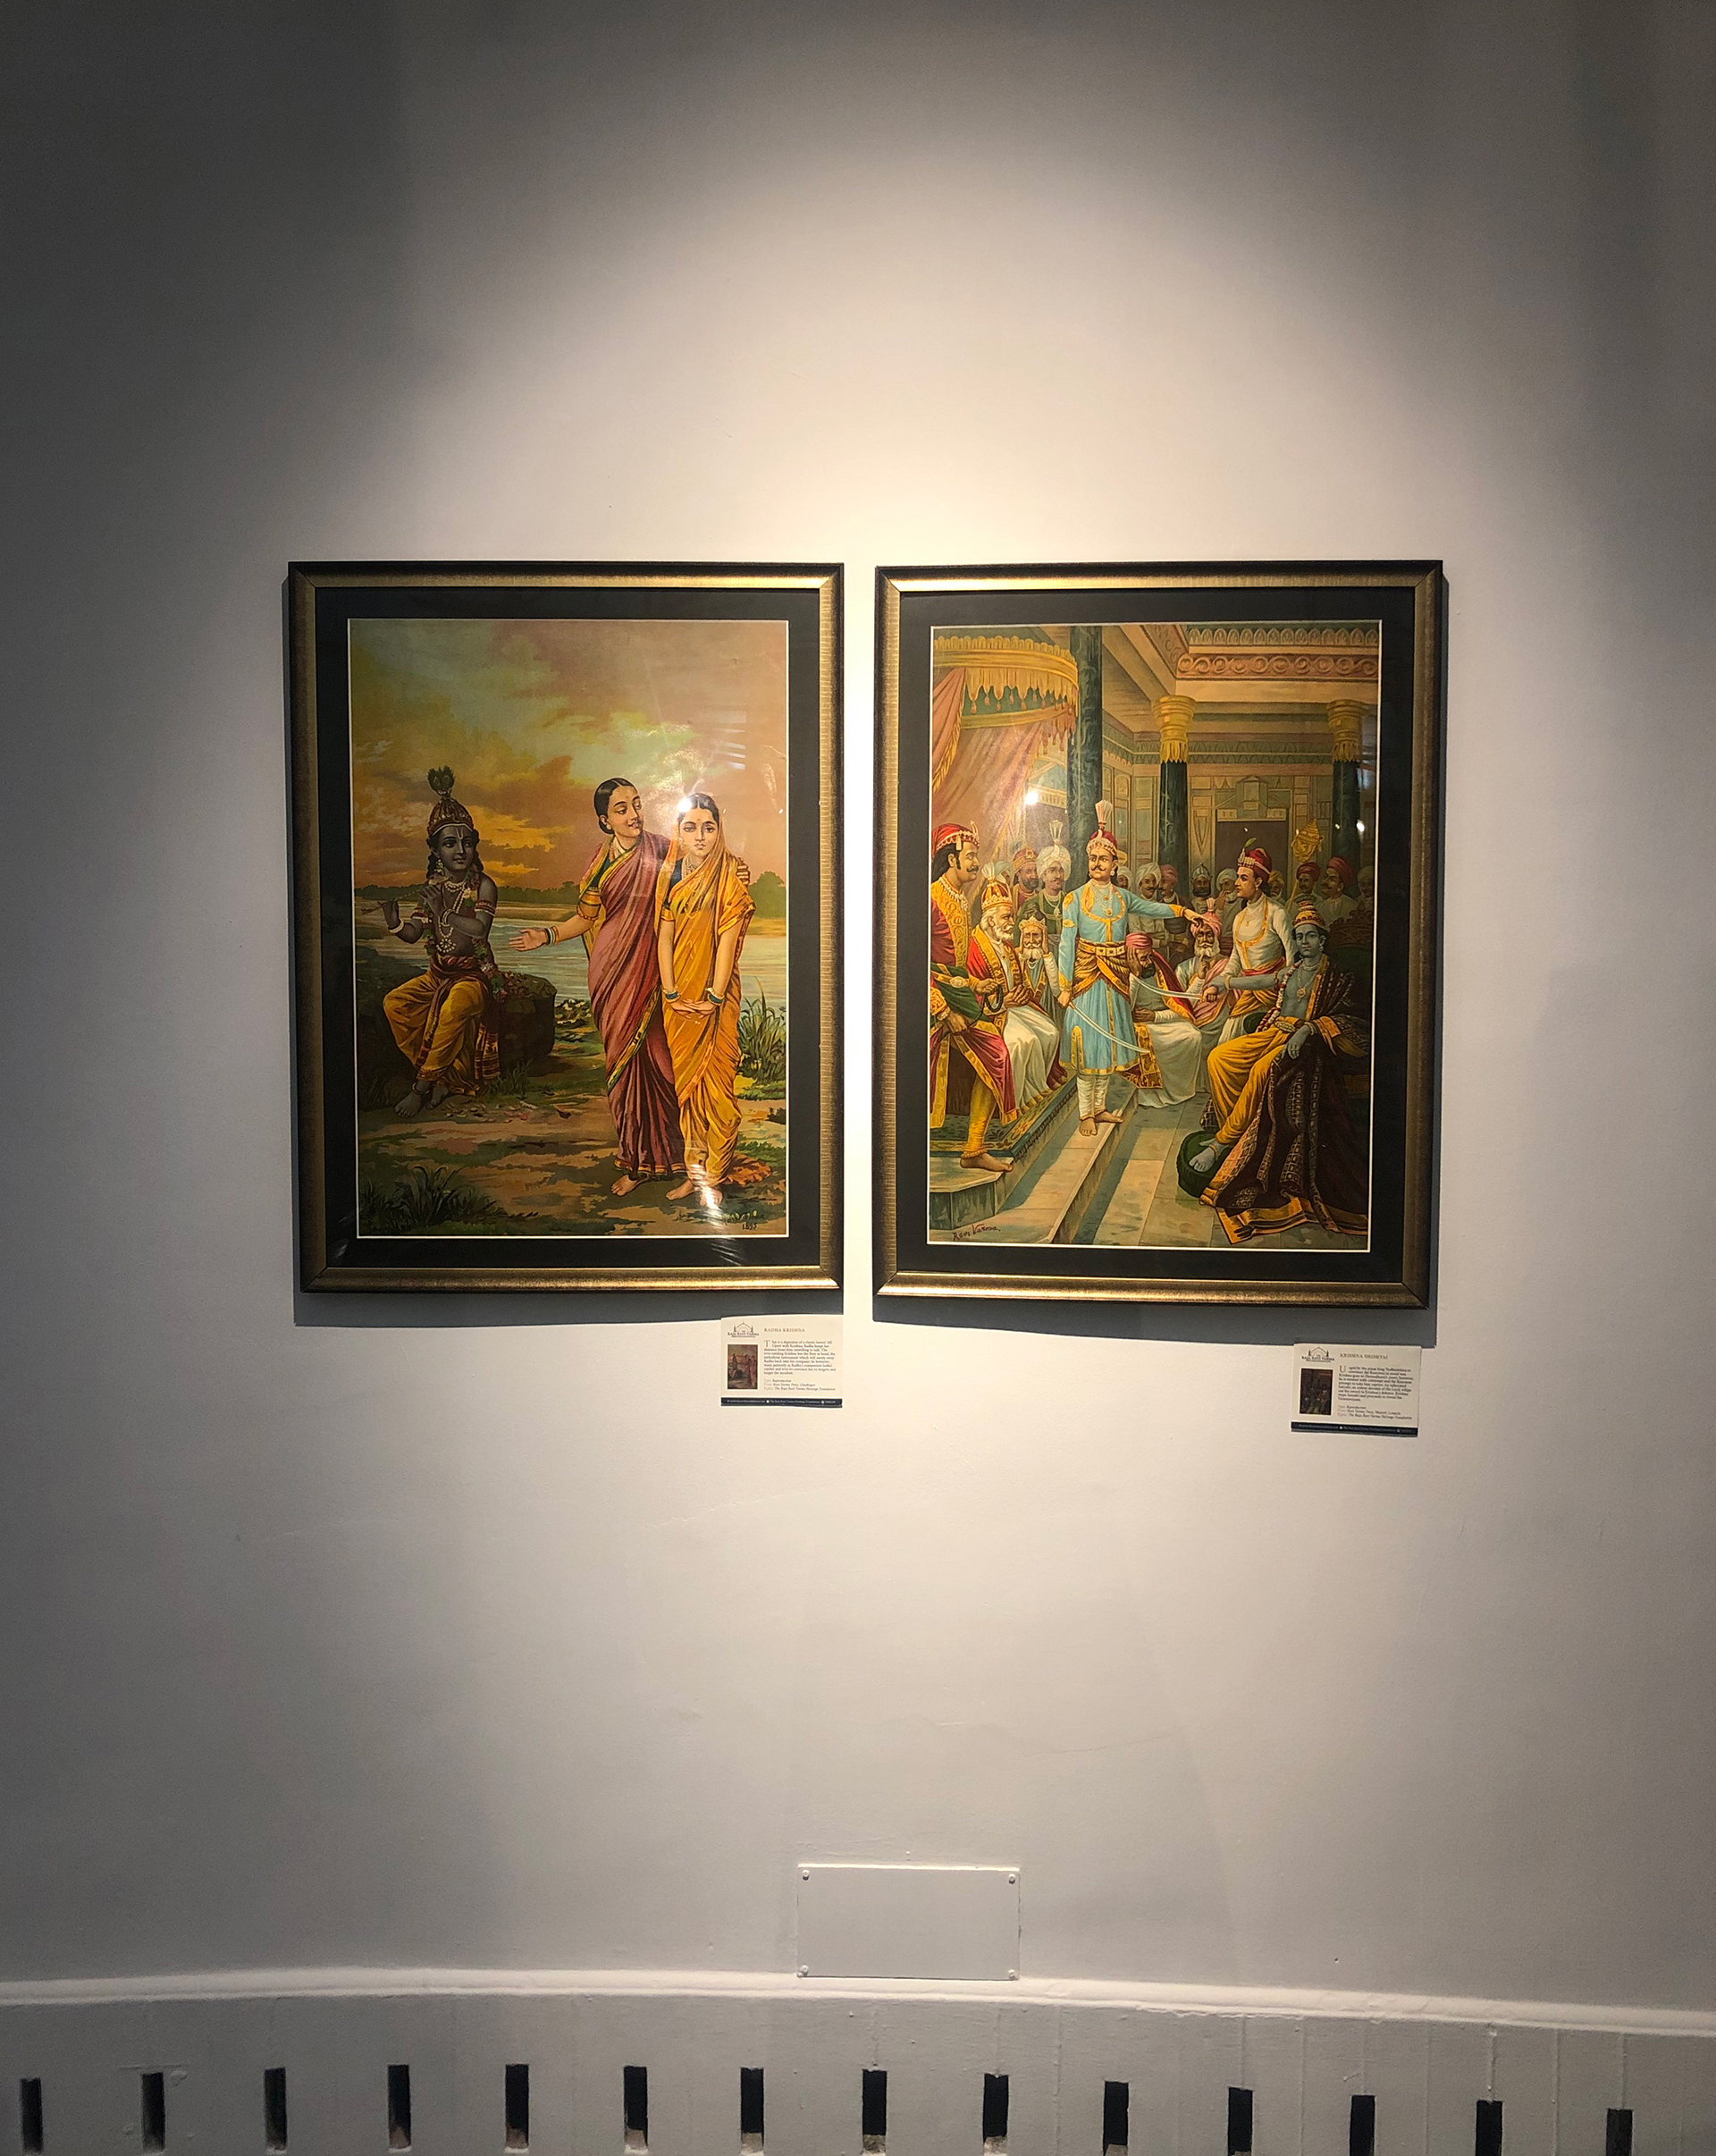 Collection of lithographs from artist Raja Ravi Varma's collection of works | Exhibition | Santati | Mahatma Gandhi | STIRworld